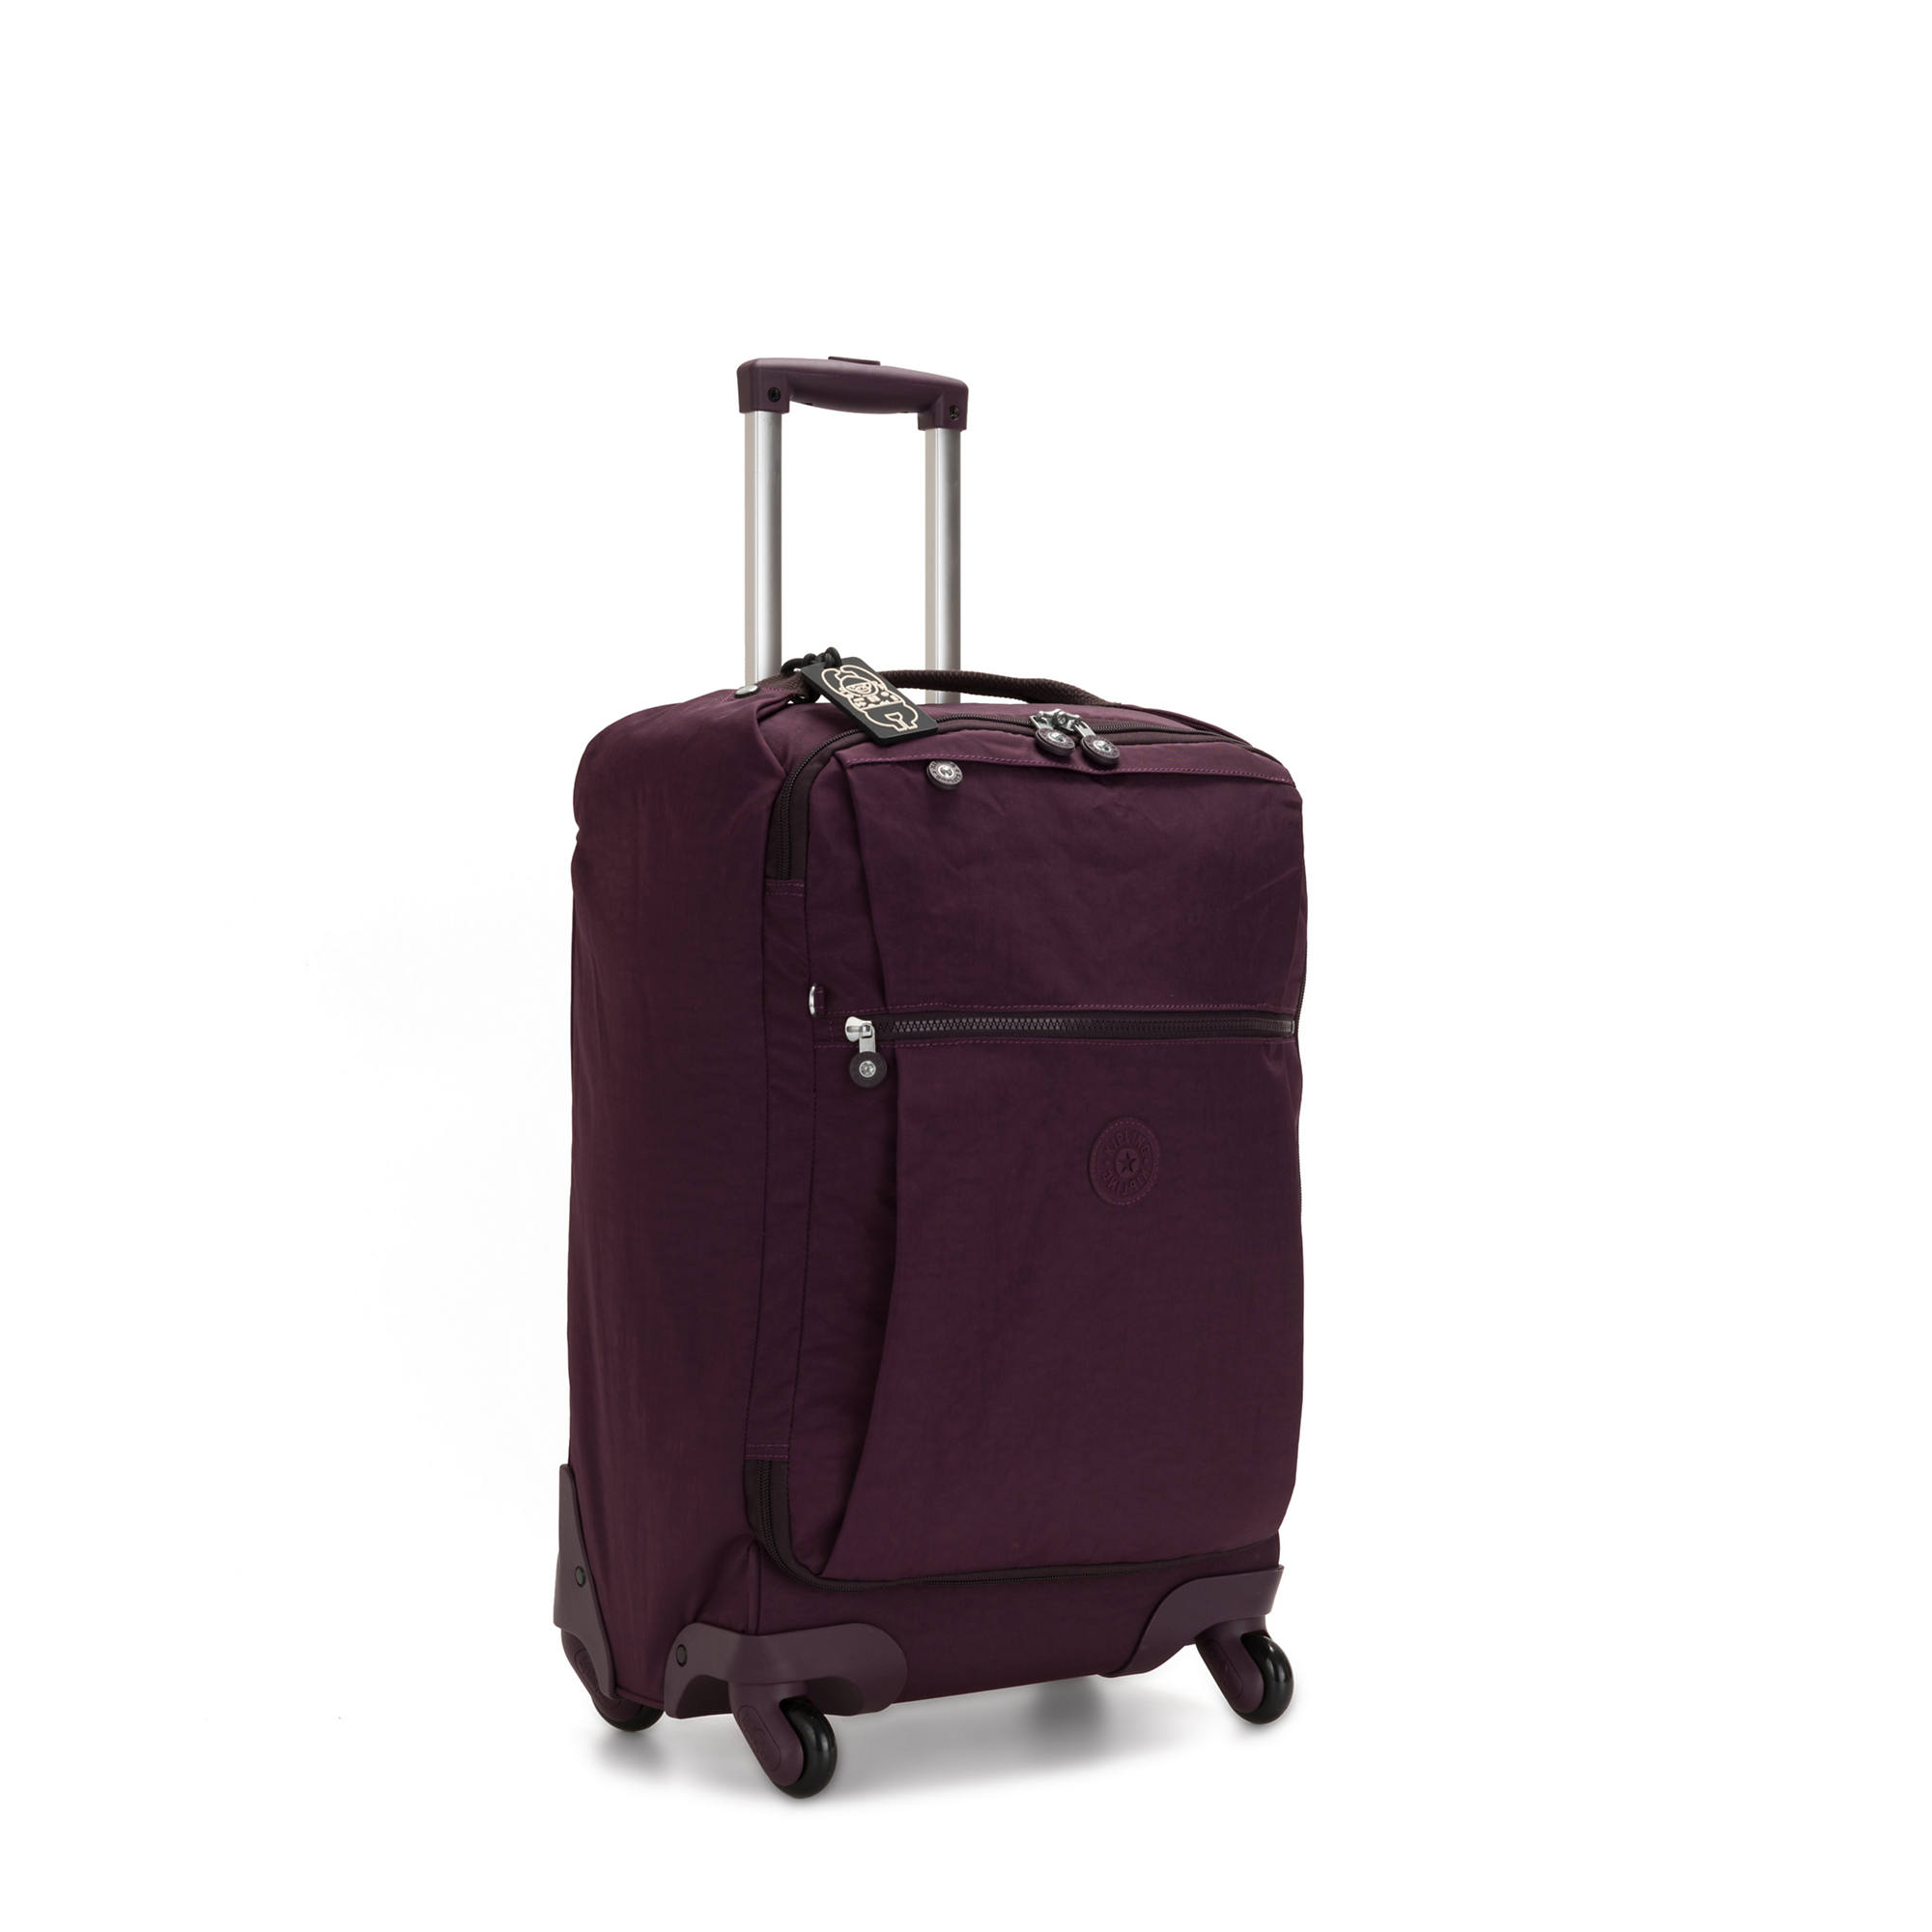 07b759d5d945 Darcey Small Carry-On Rolling Luggage